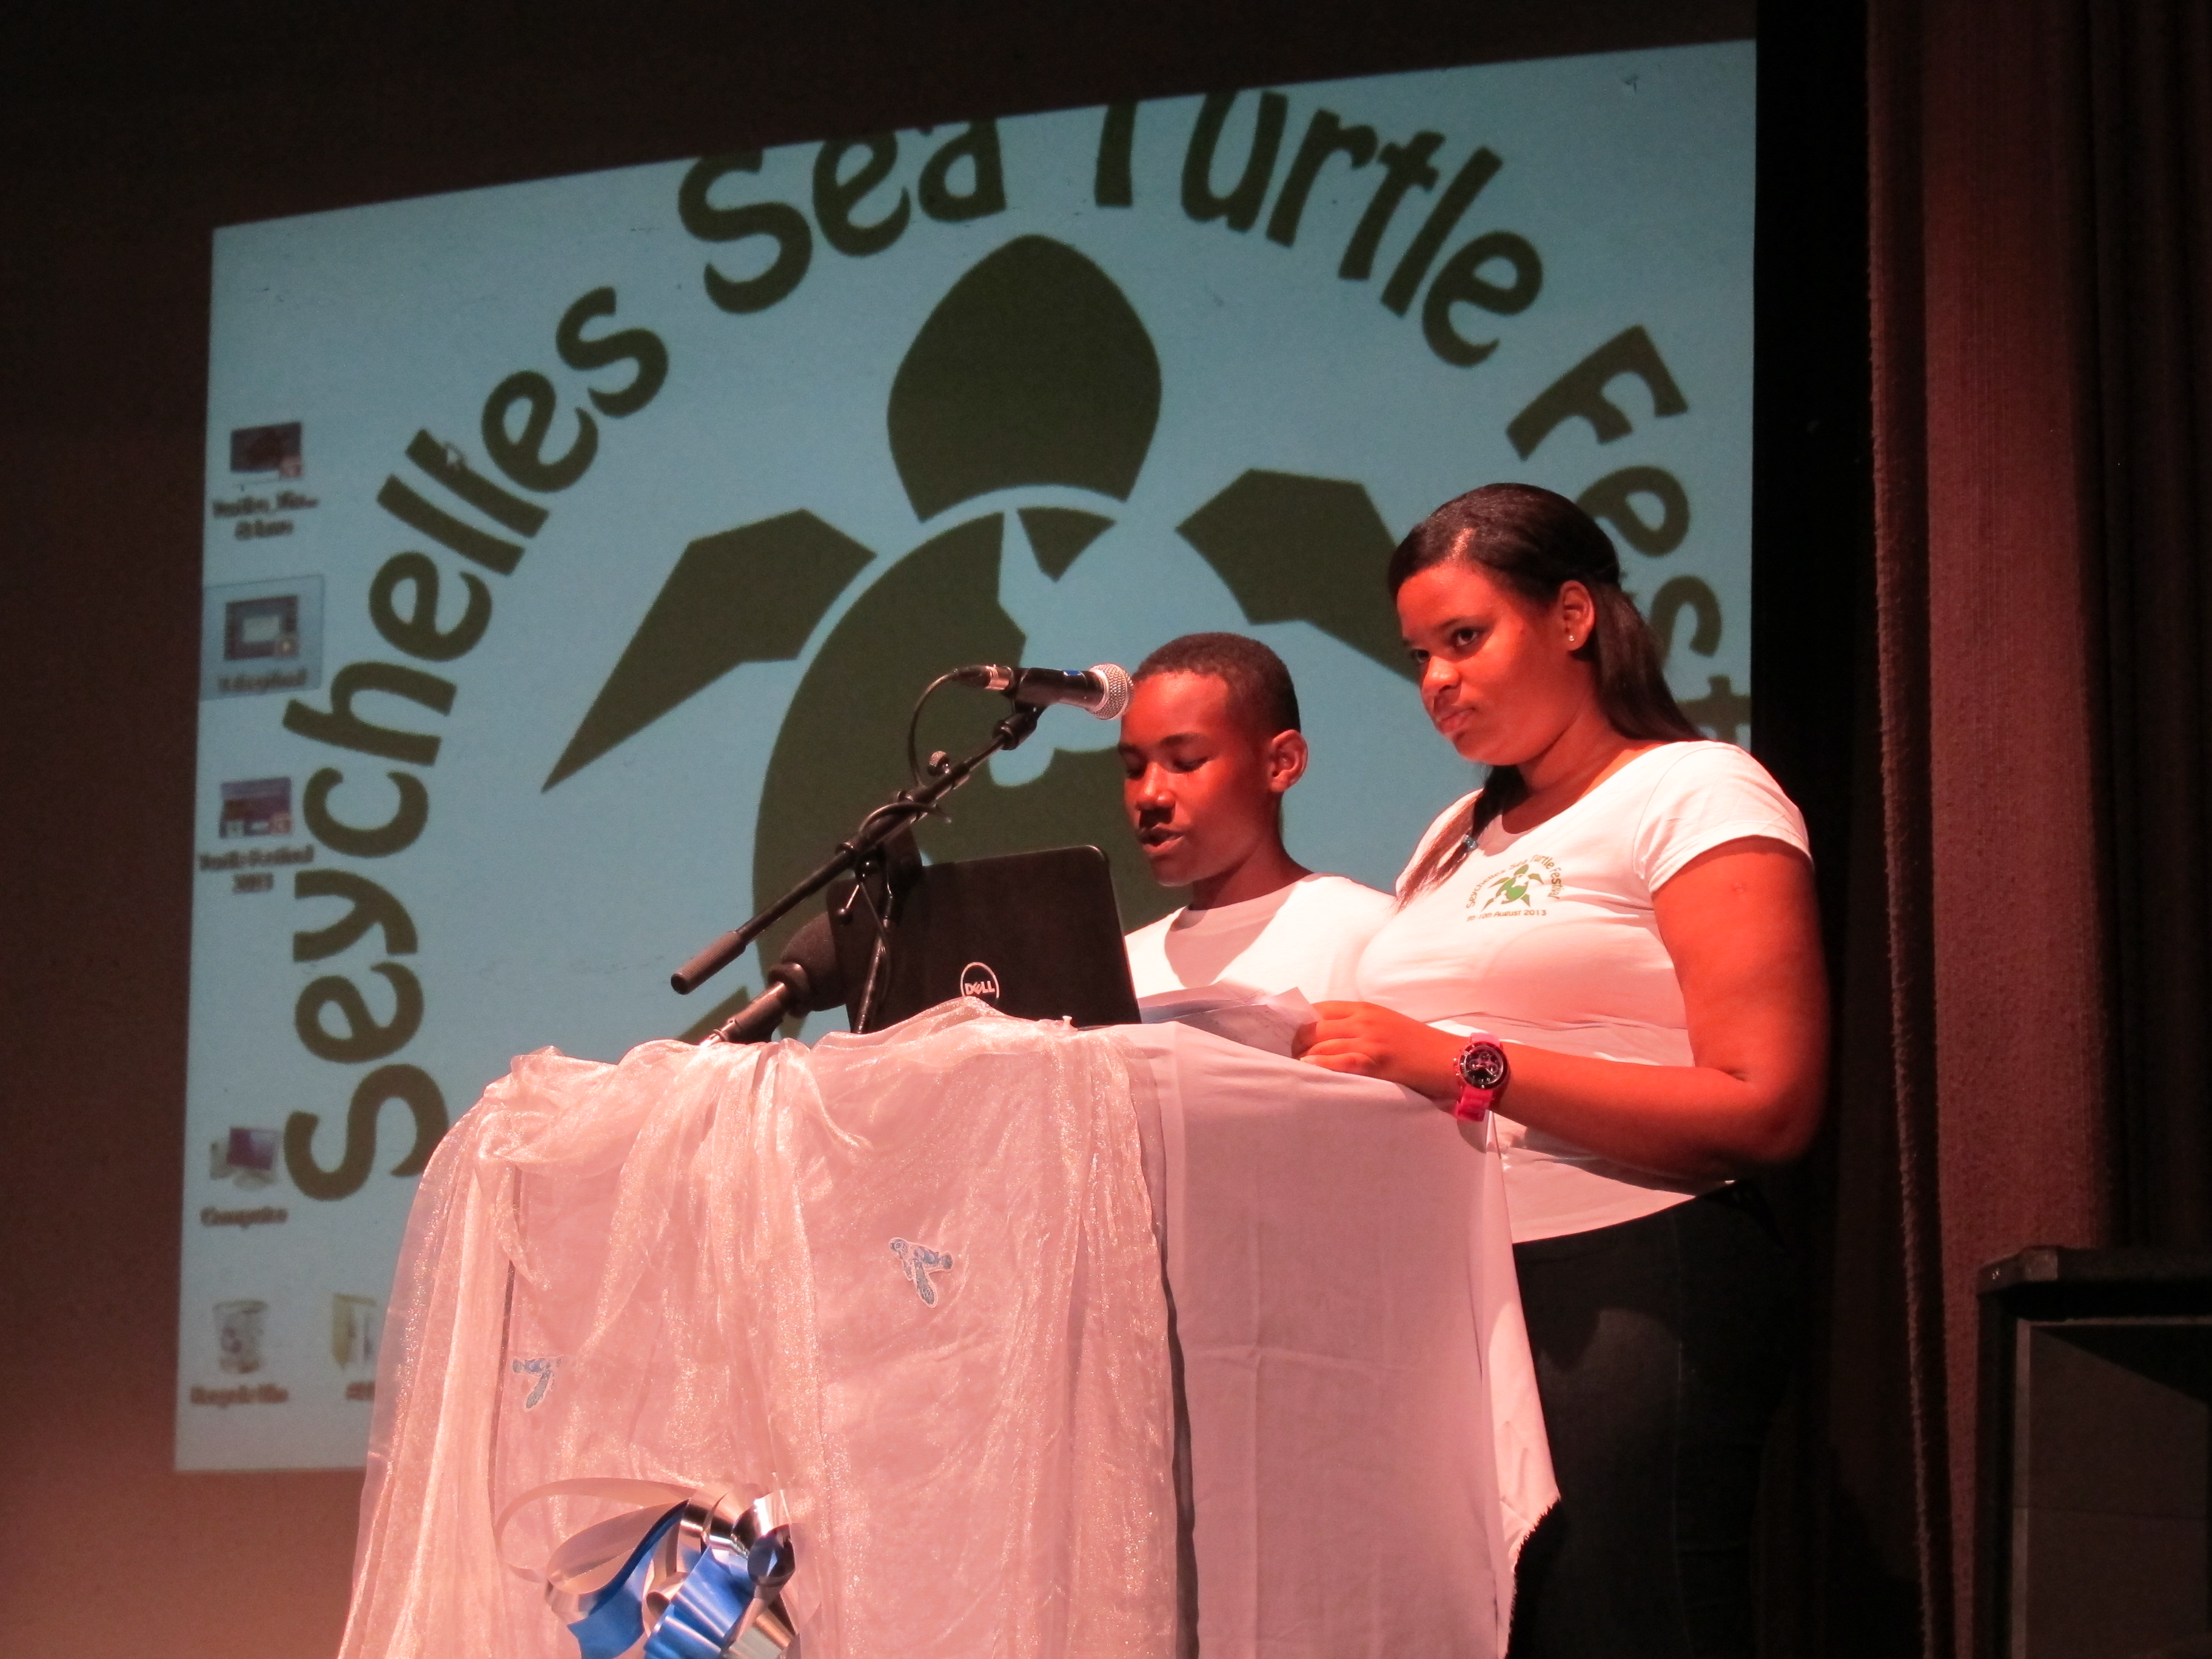 MCs Joshua Sofola and Anthea Laurence at the Seychelles Sea Turtle Festival Opening Ceremony. Photo: Abi March